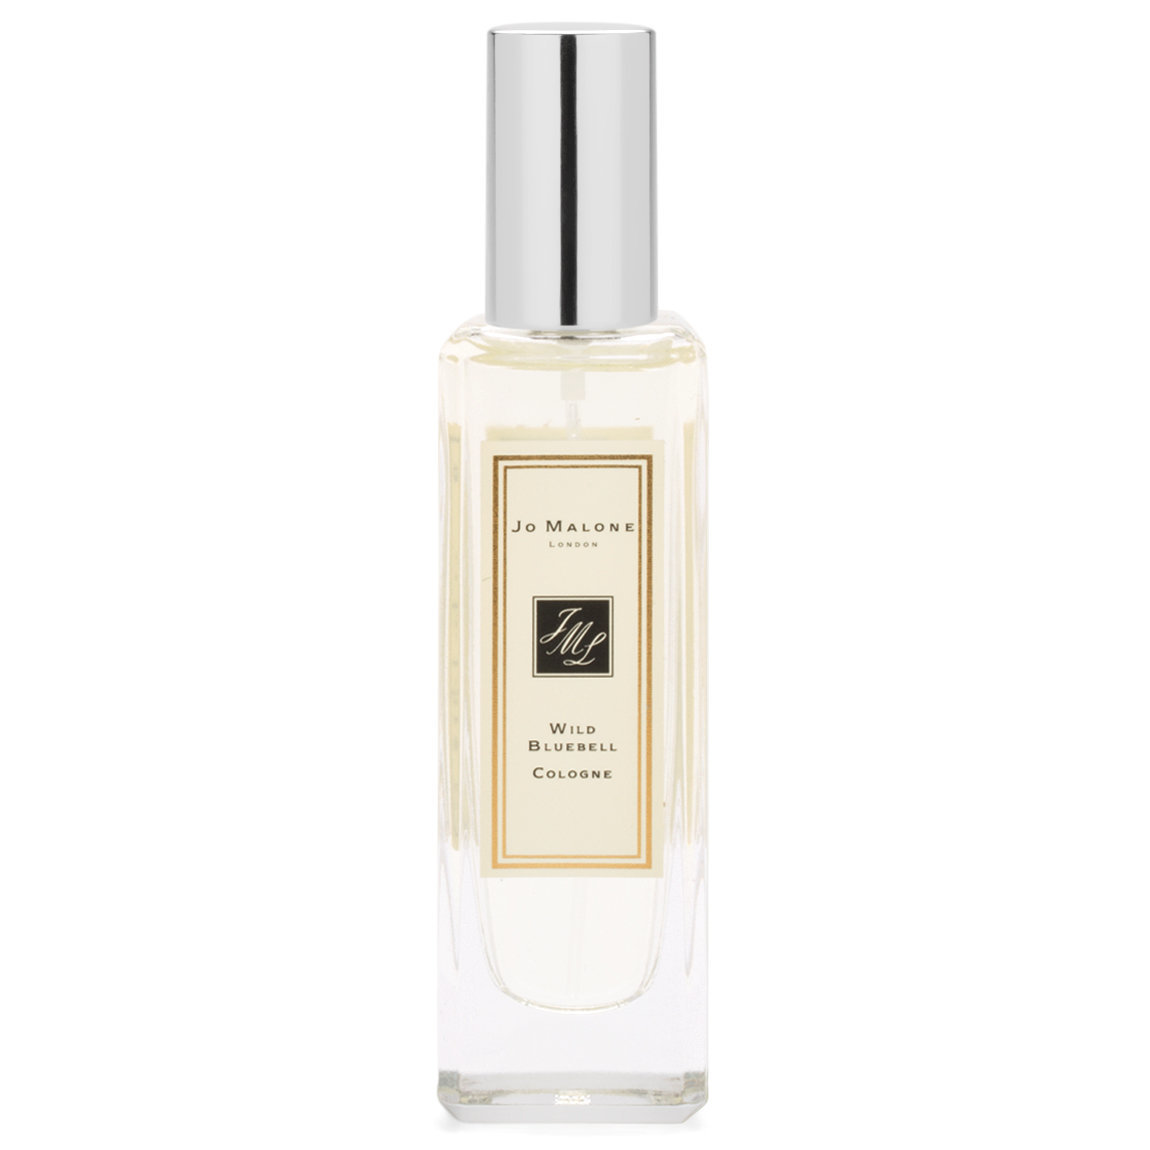 Jo Malone London Wild Bluebell Cologne  30ml product smear.